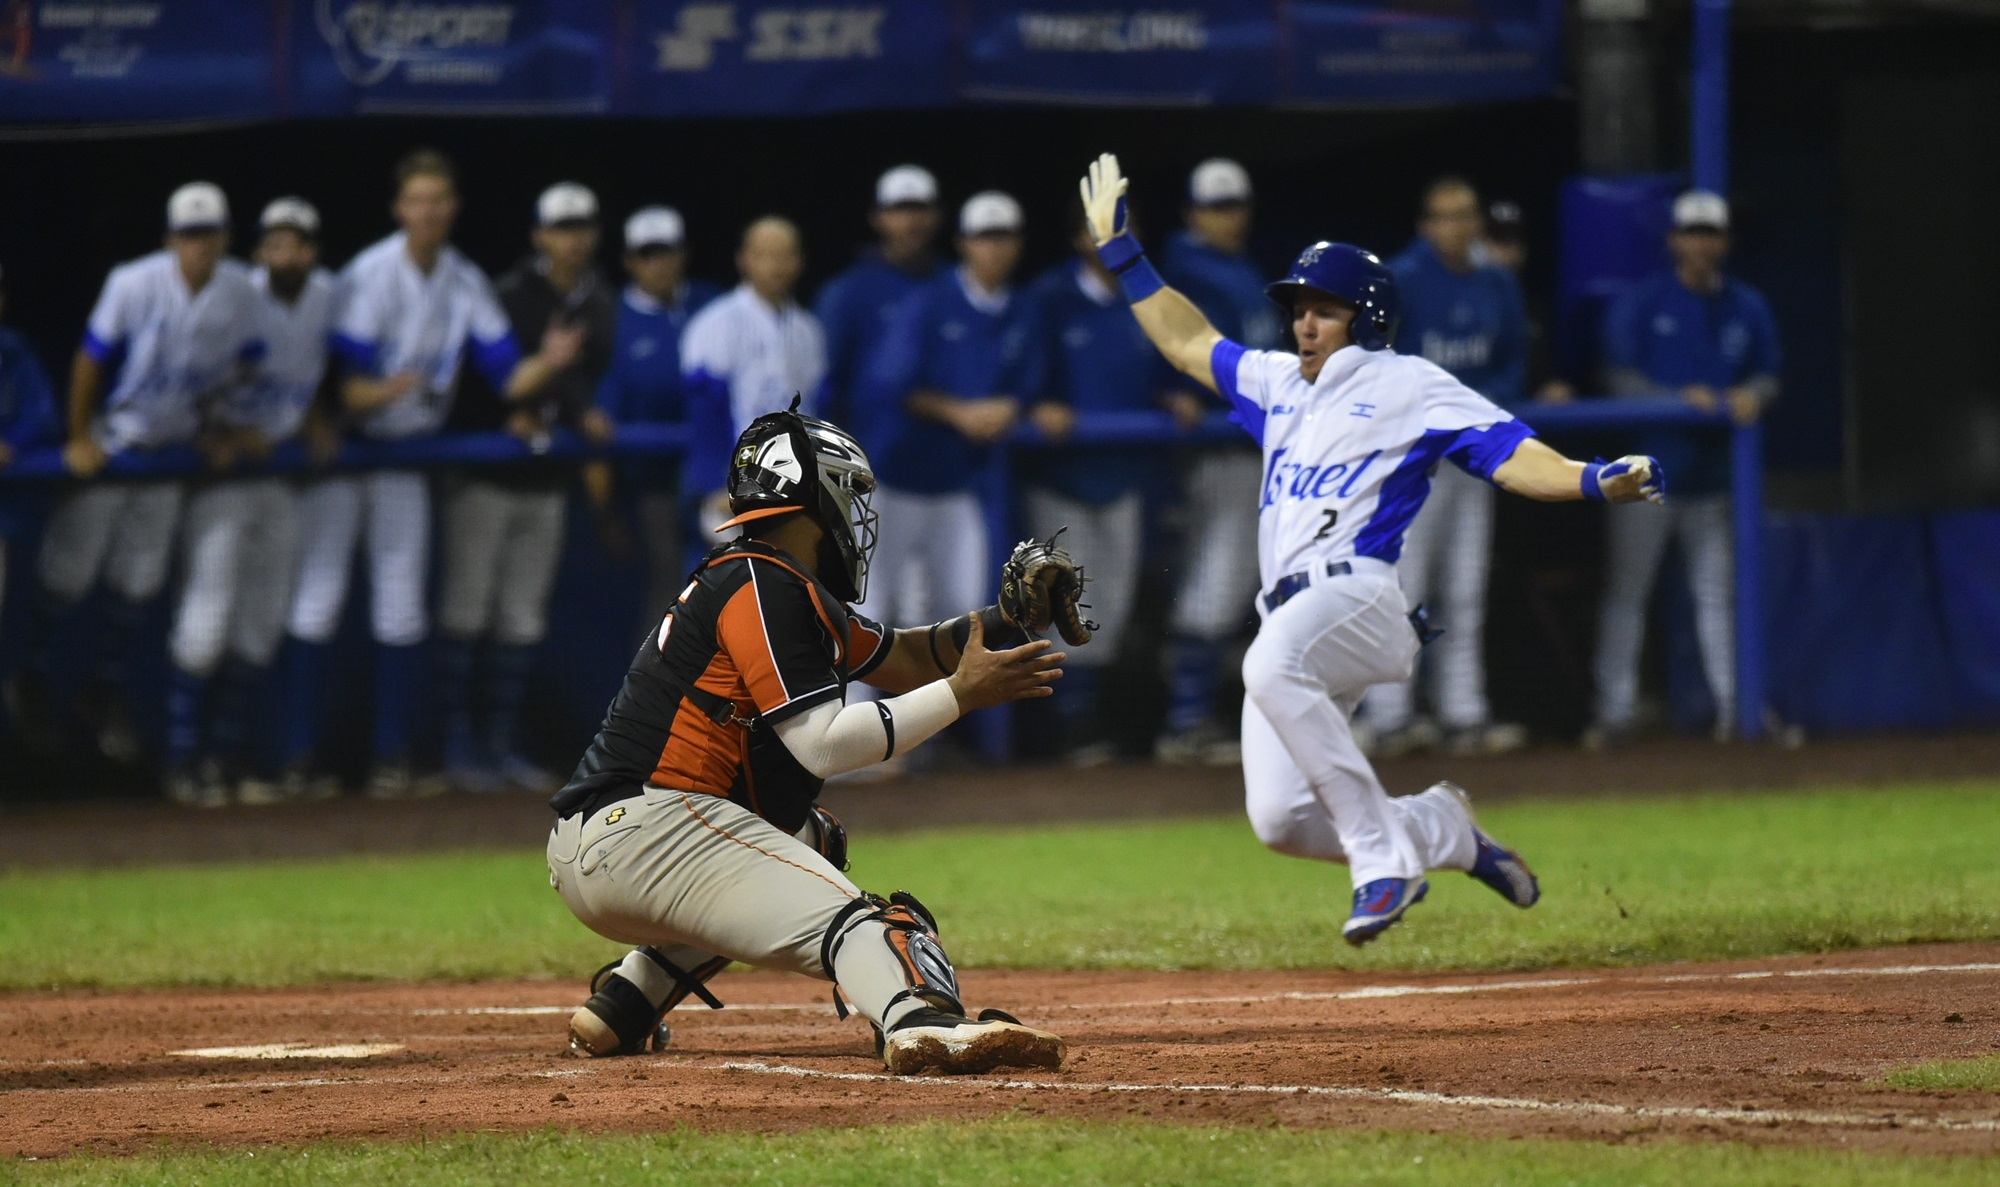 Israel scored eight runs despite losing two runners at home plate